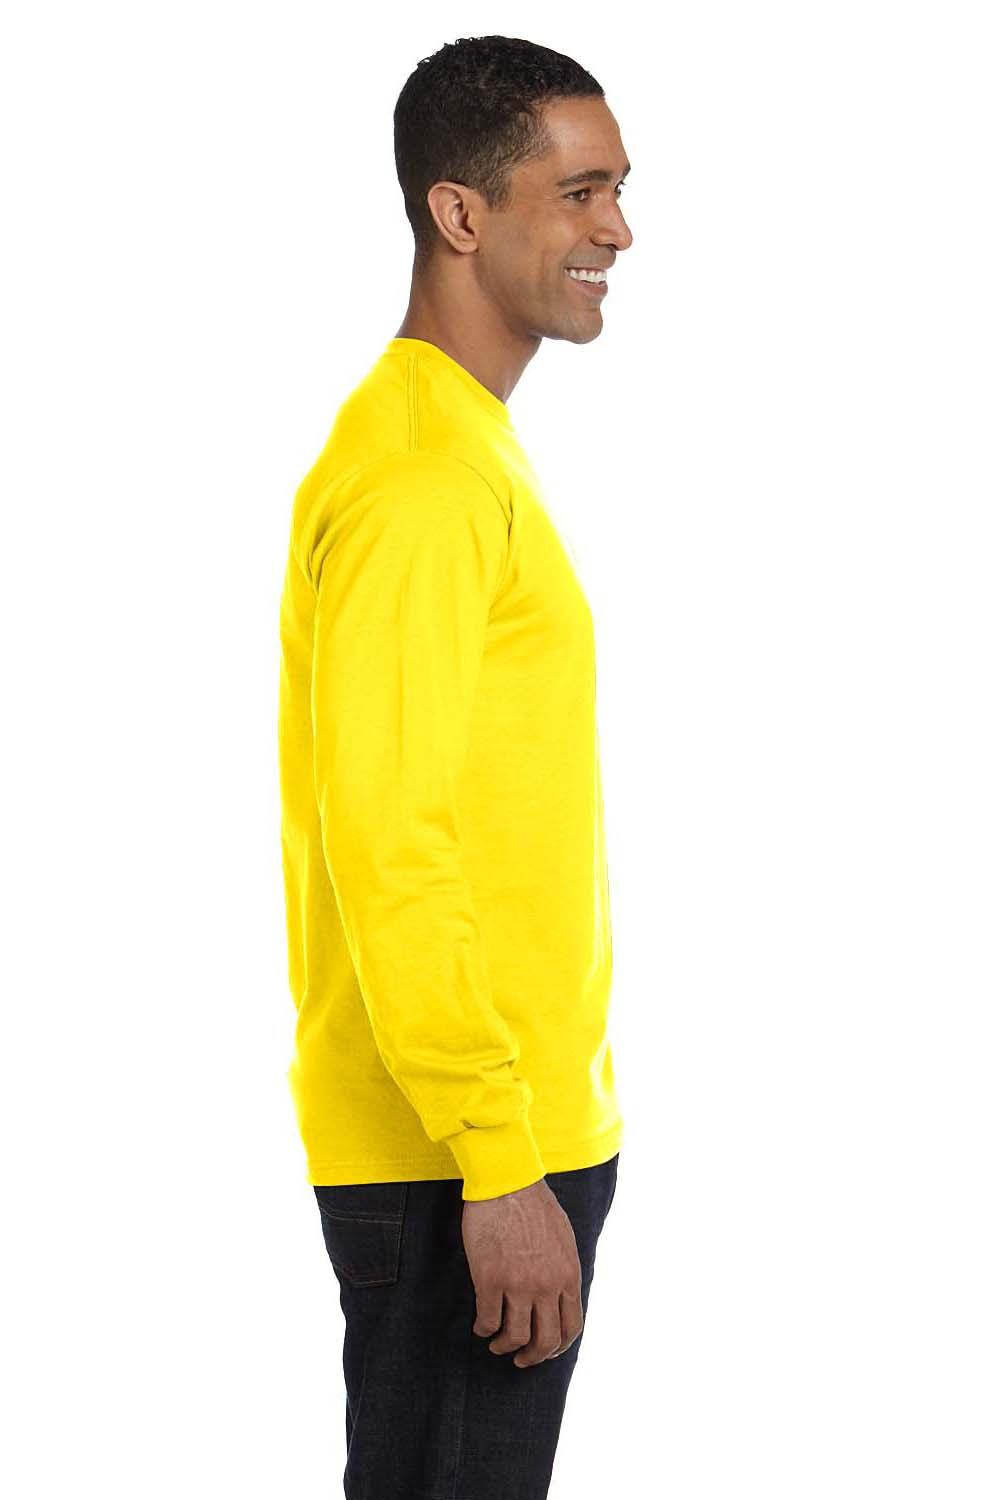 Hanes 5186 Mens Beefy-T Long Sleeve Crewneck T-Shirt Yellow Side